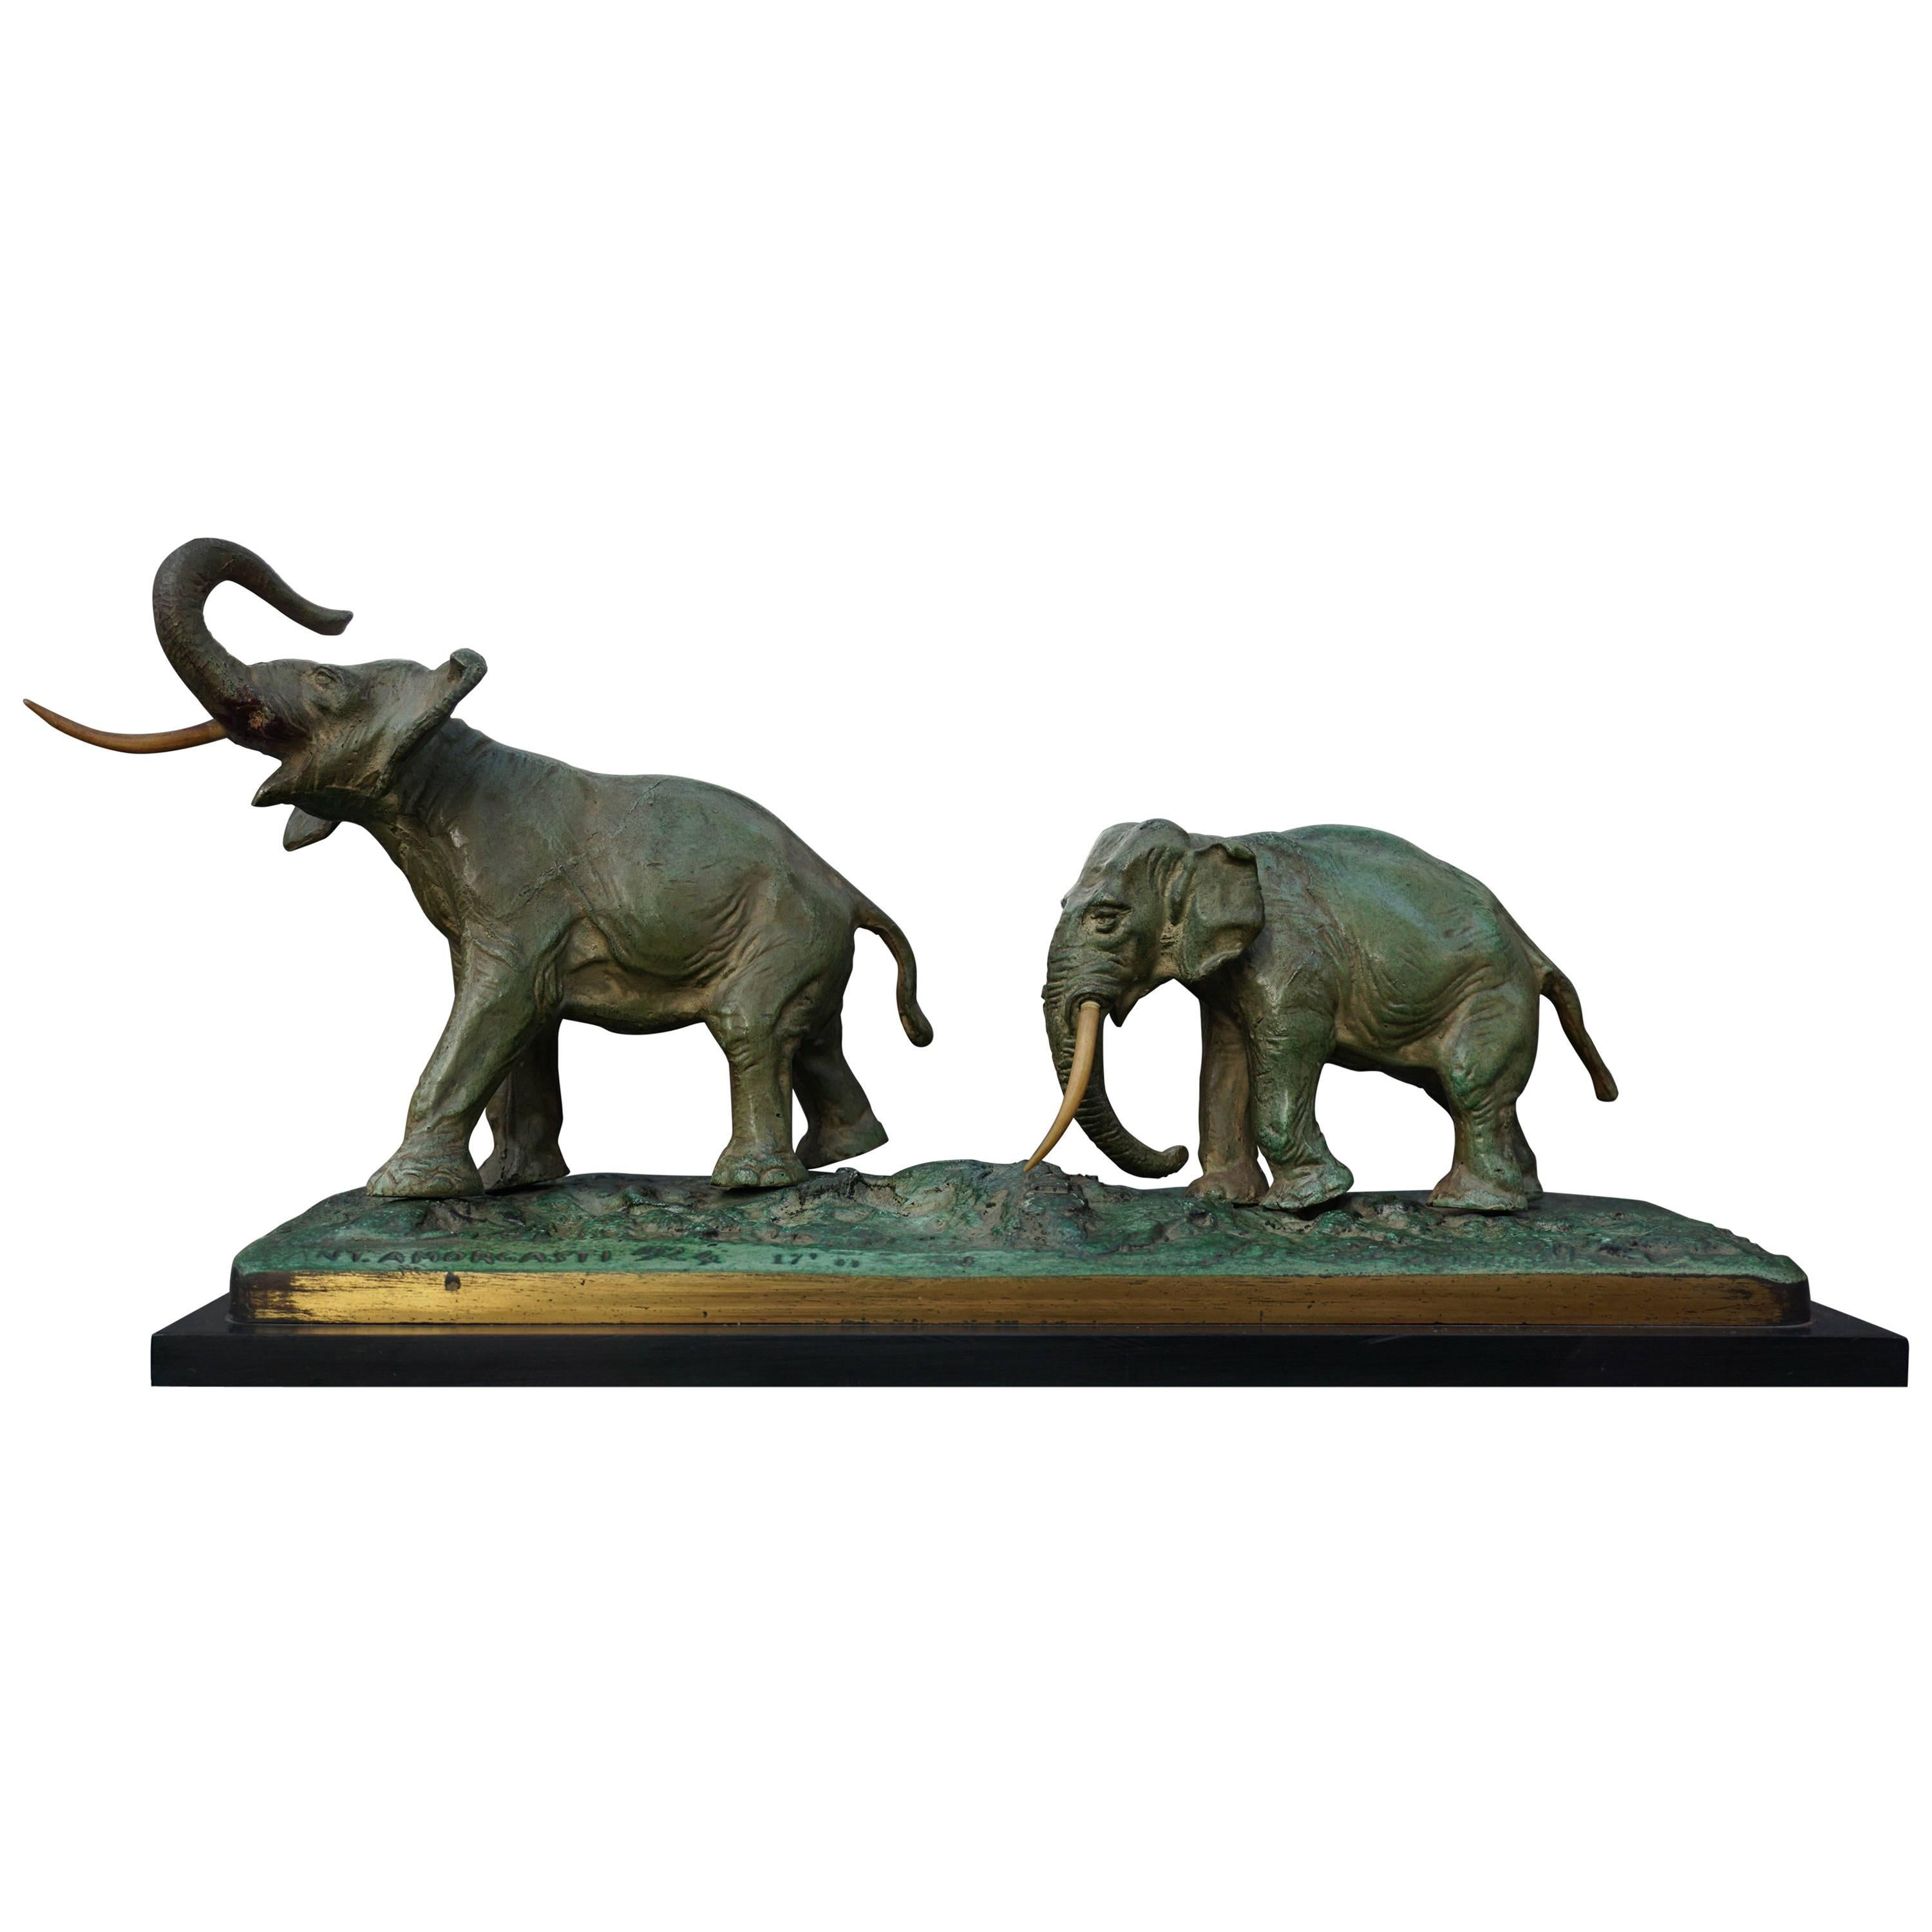 Early 20th Century Bronze Sculpture of Elephants